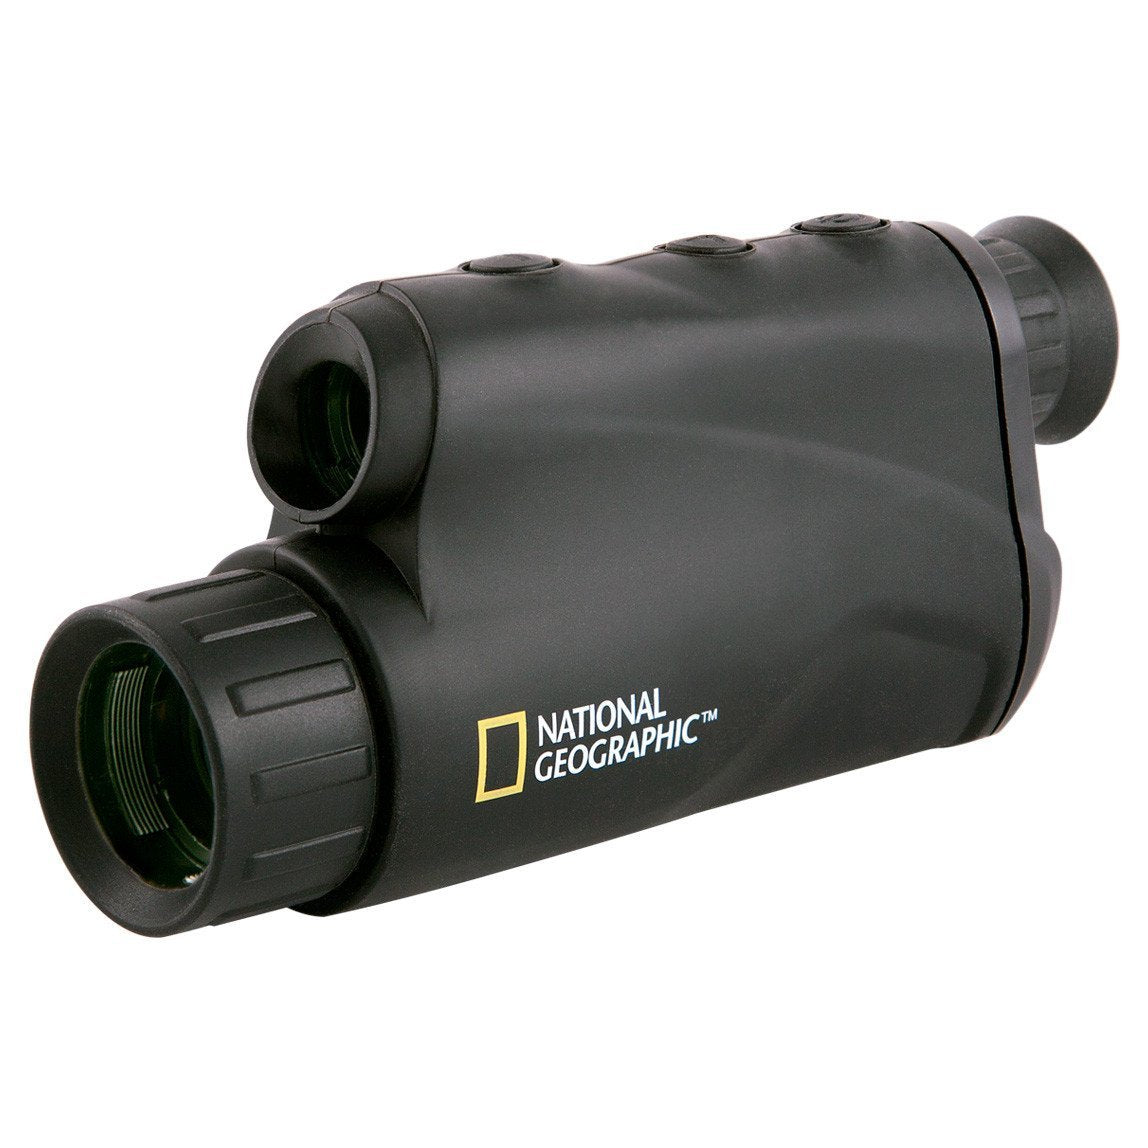 National Geographic 3x25 Night Vision - 80-50151